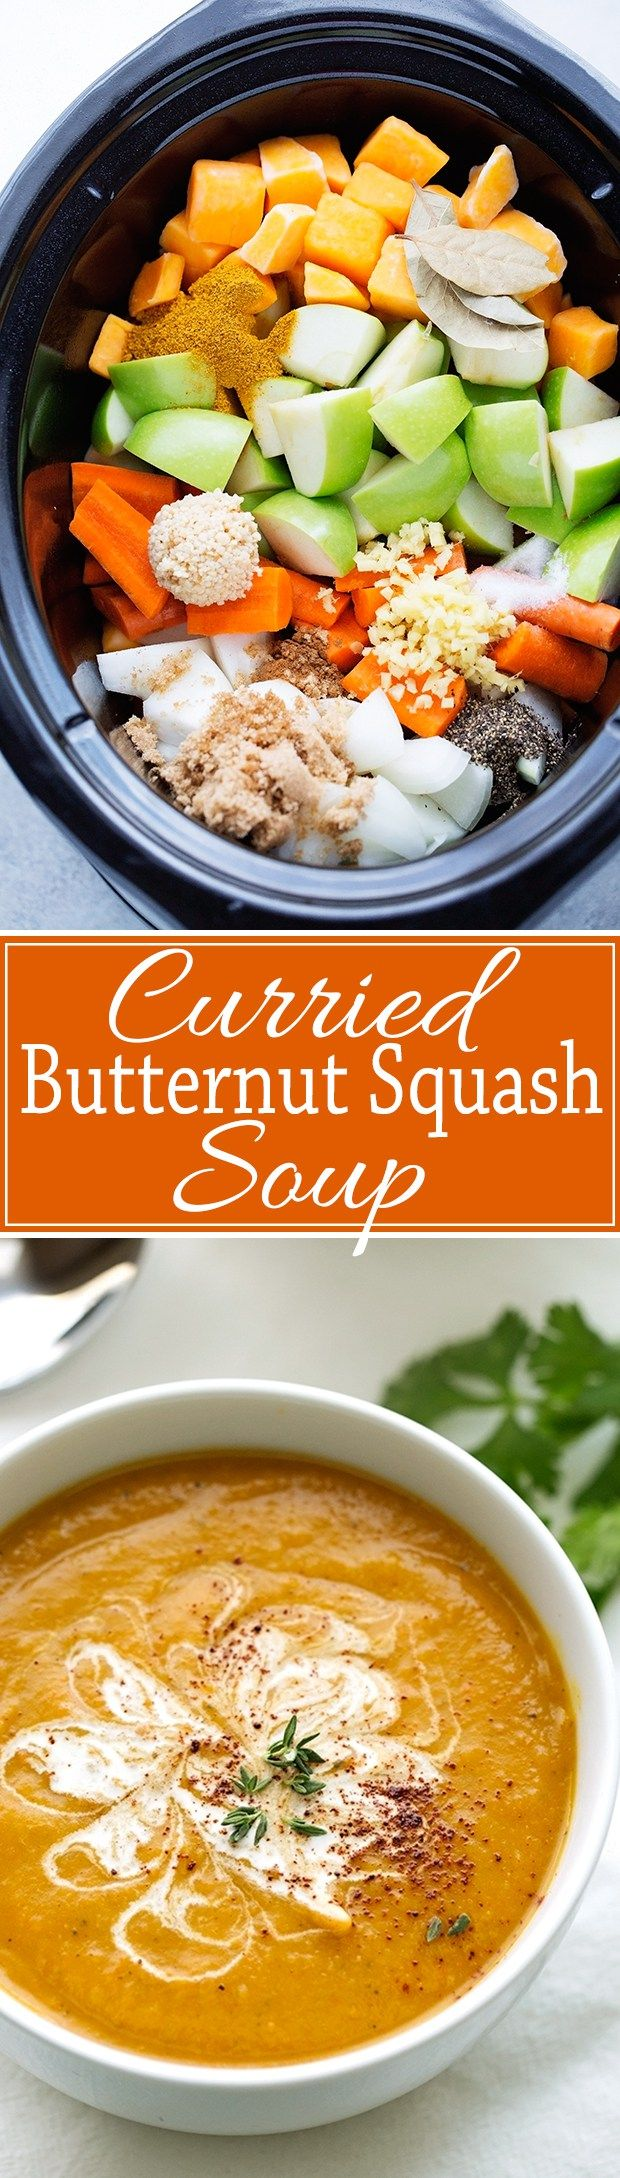 Curried Butternut Squash Soup {Slow Cooker} - Smooth, creamy, and super comforting curried Butternut Squash Soup made in the slow cooker.